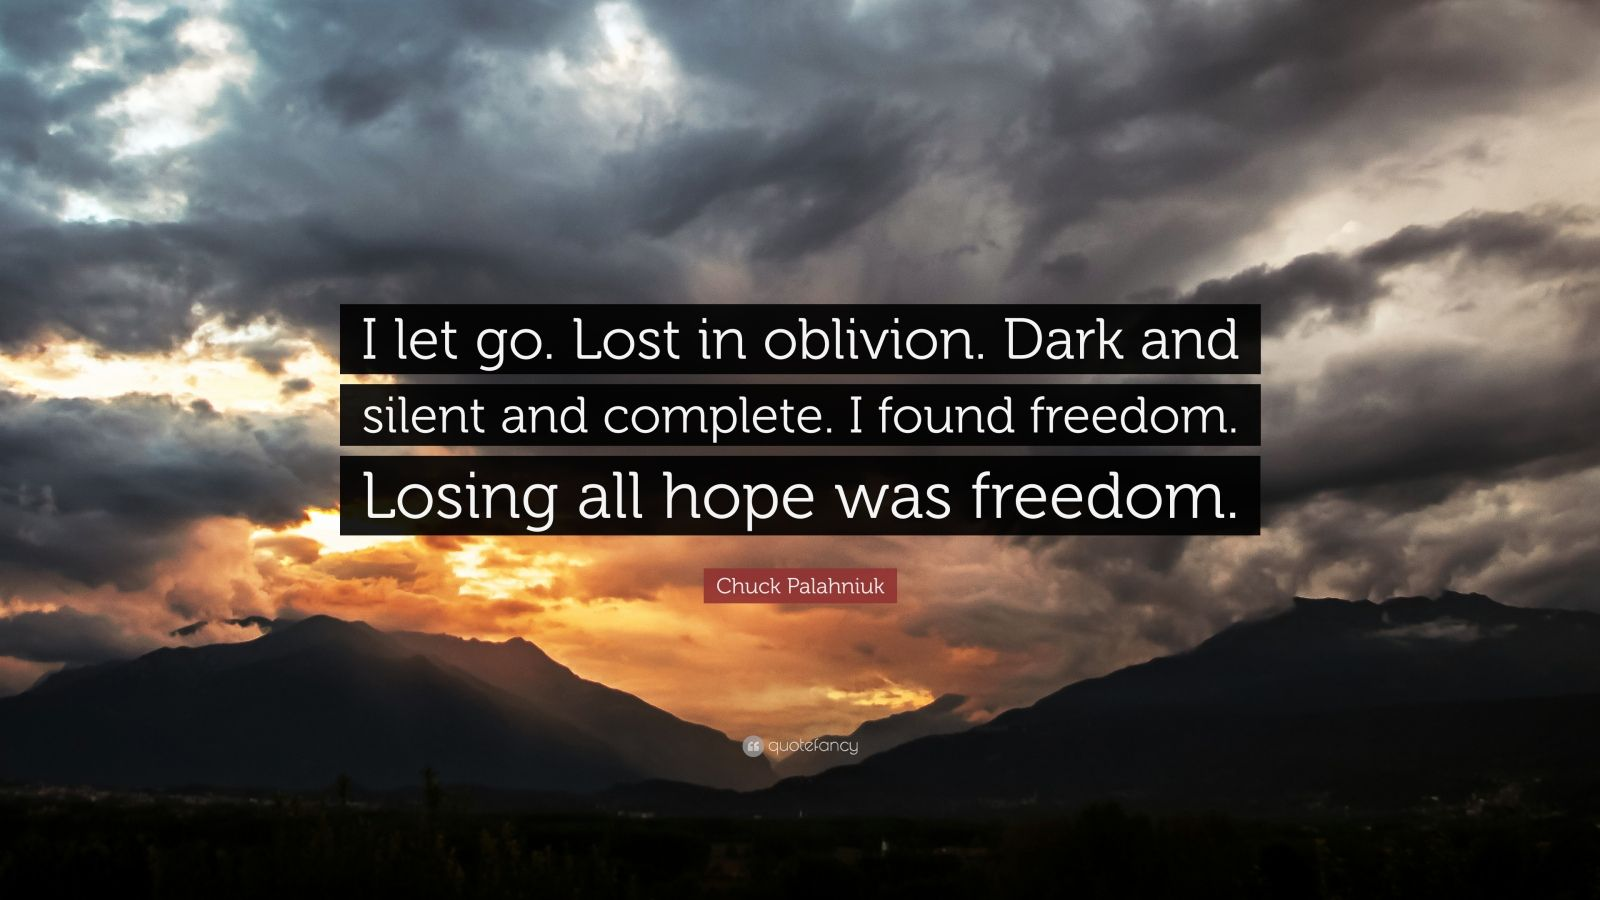 Theodore Roosevelt Quotes Wallpaper Chuck Palahniuk Quote I Let Go Lost In Oblivion Dark